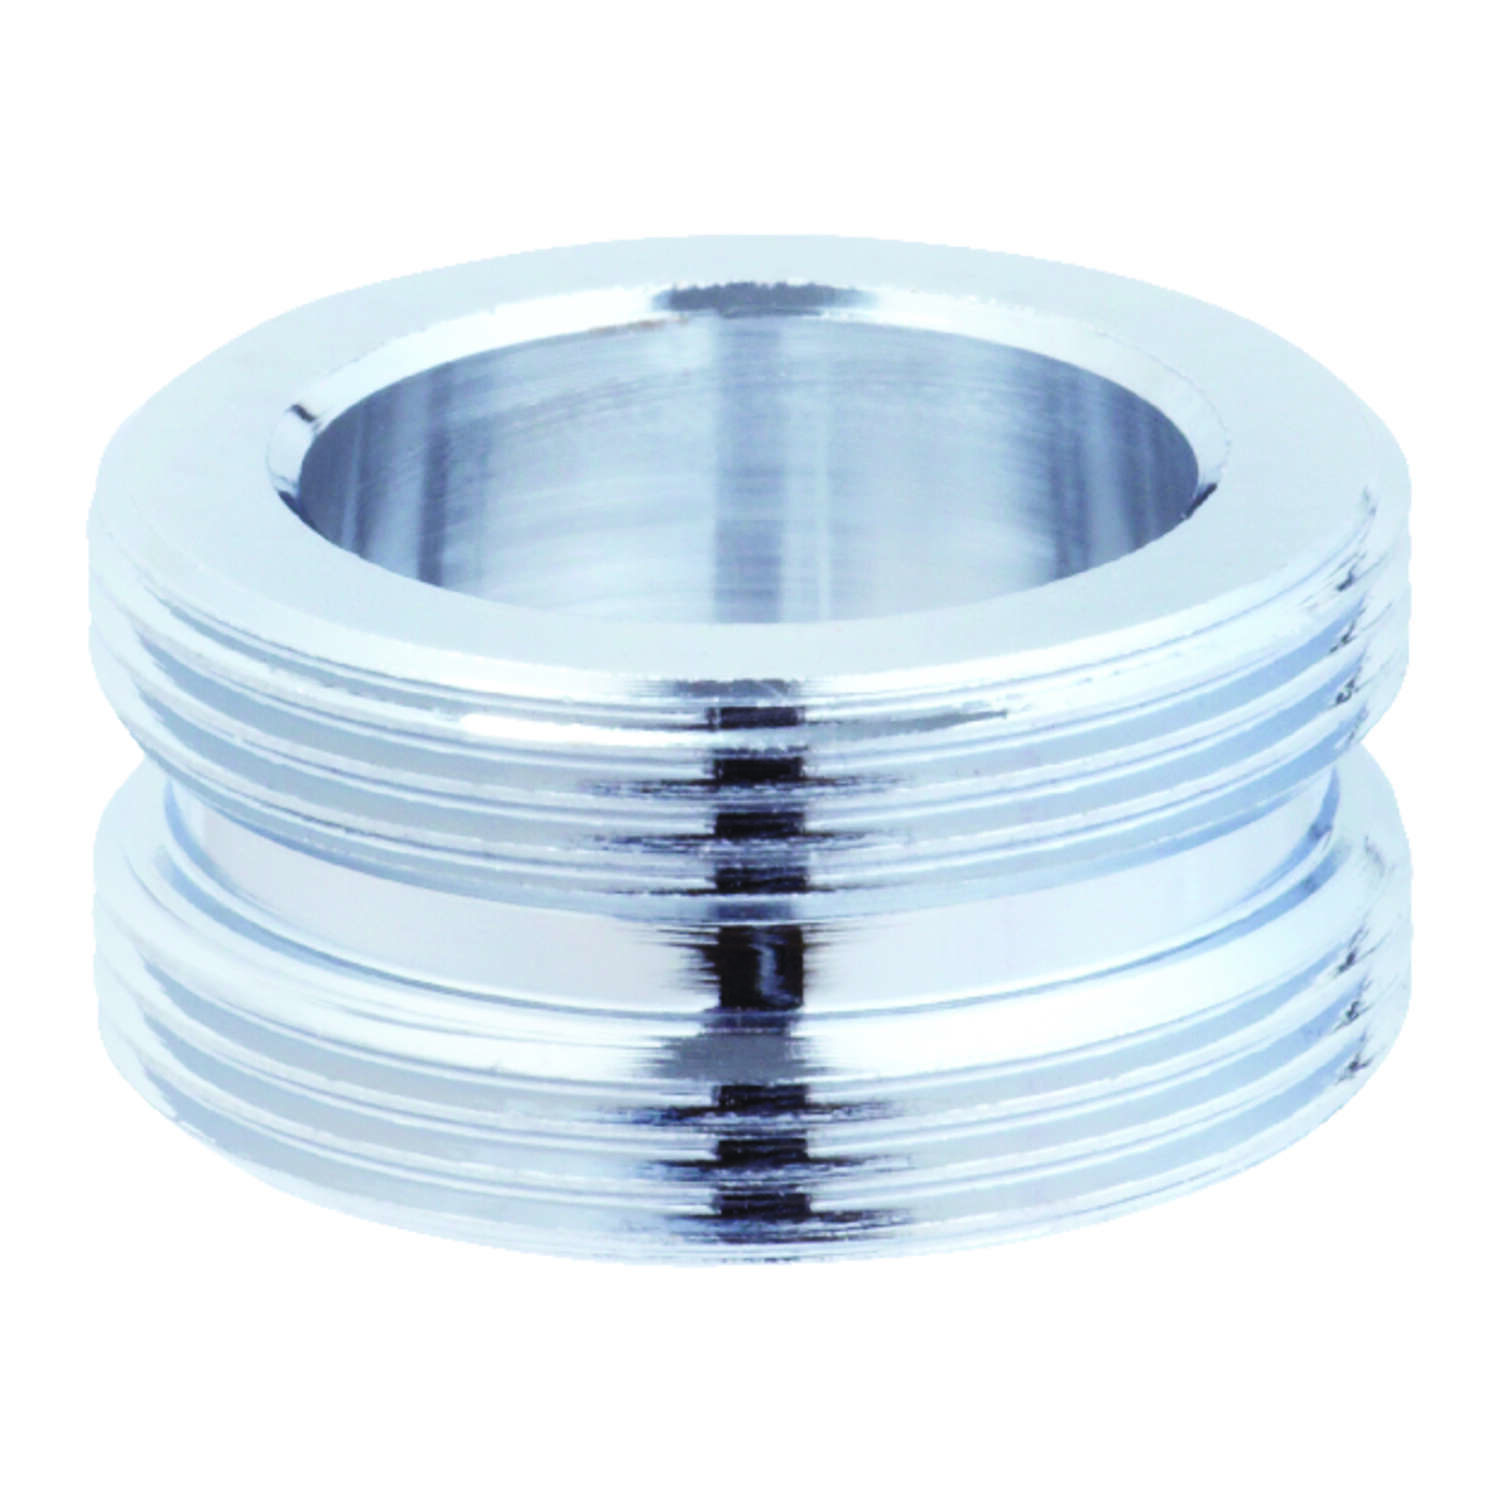 Ace  Aerator Adapter  55/64 in.  x 55/64 in.  Chrome